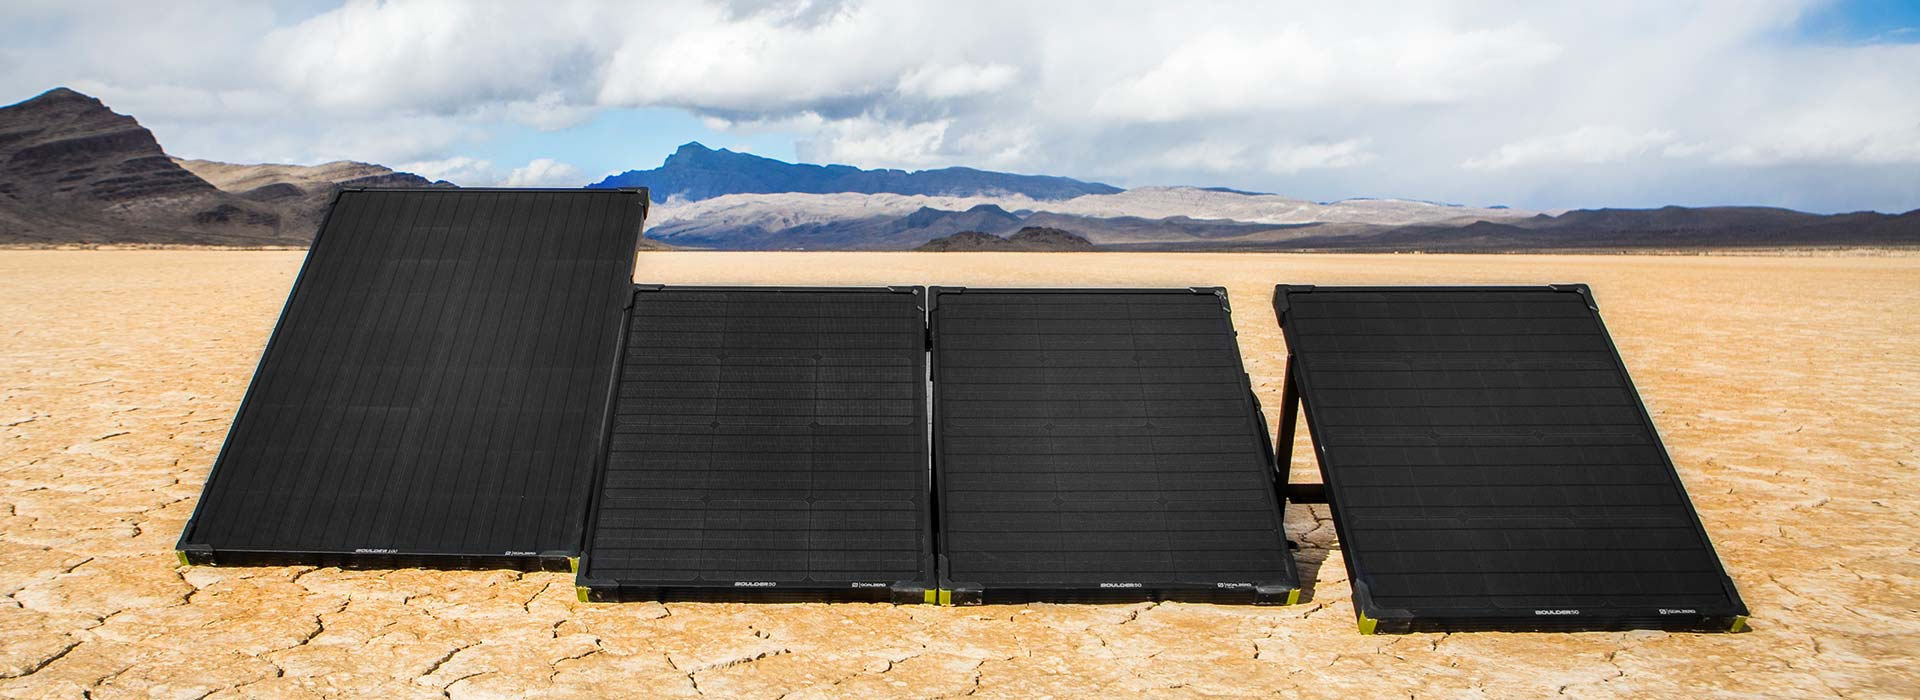 Goal Zero - Rigid Solar Panels